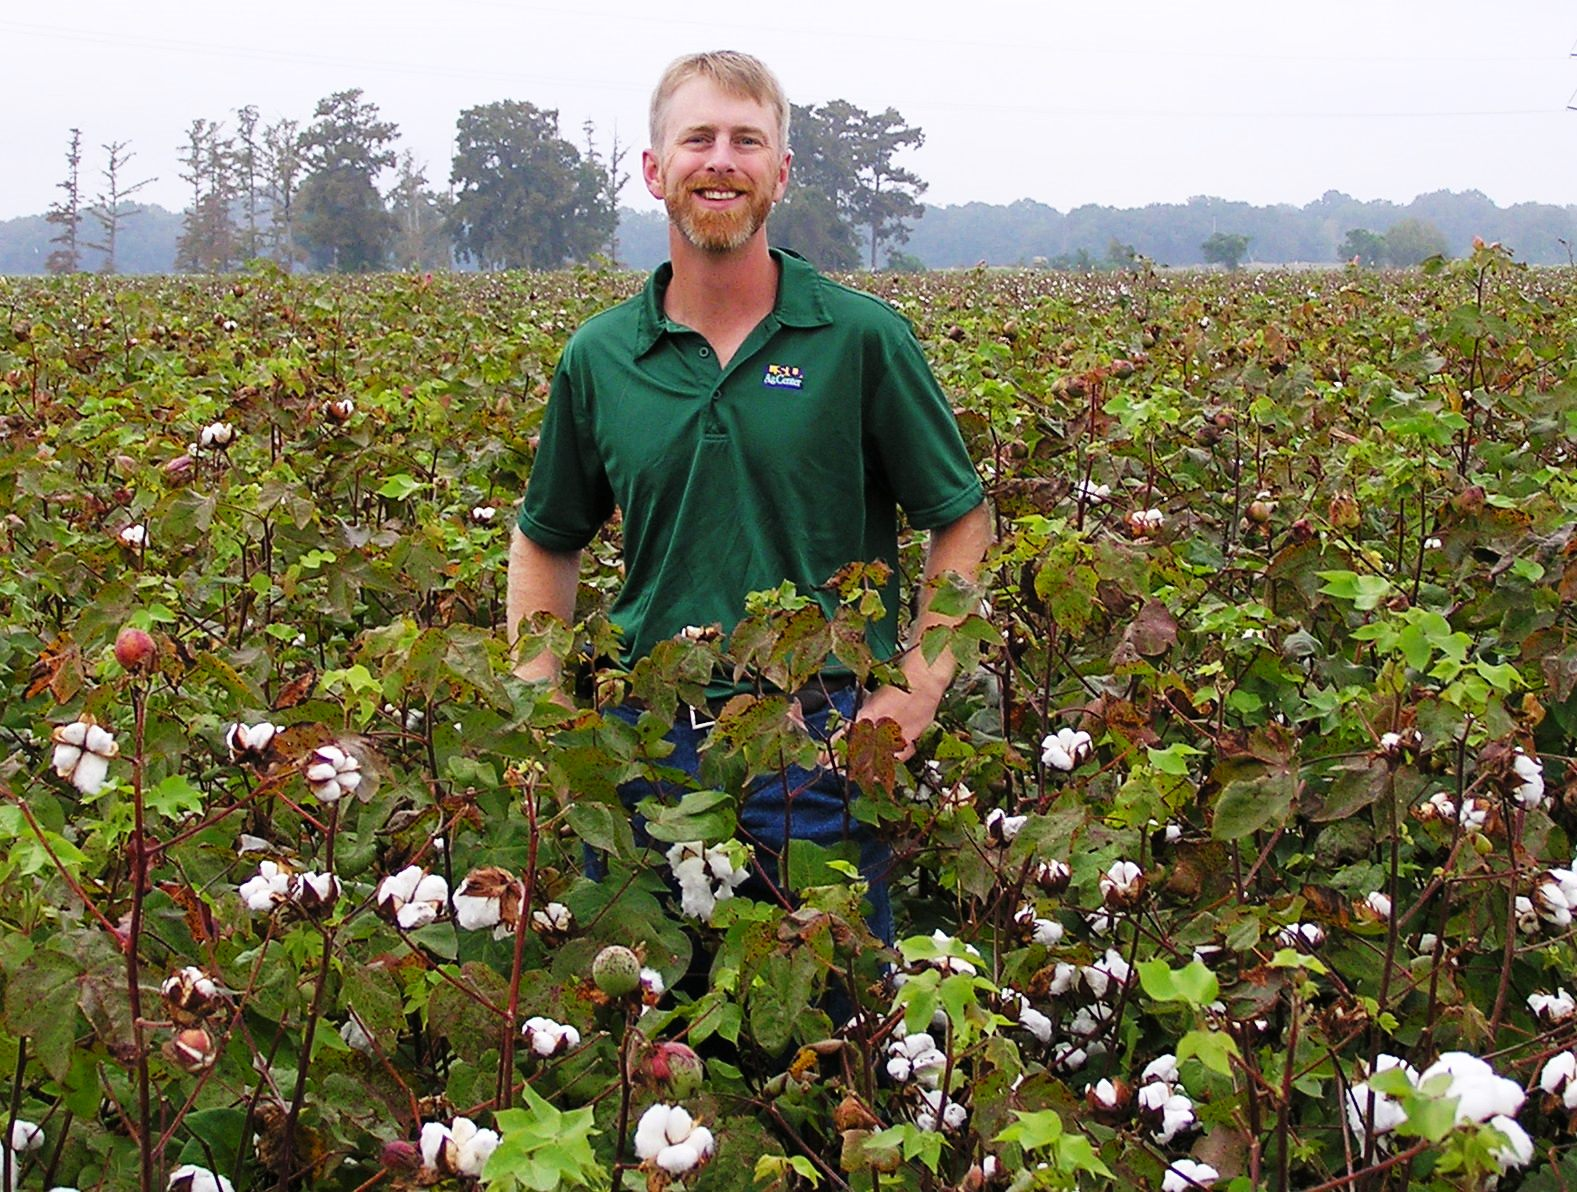 Price named LSU AgCenter field crops plant pathologist